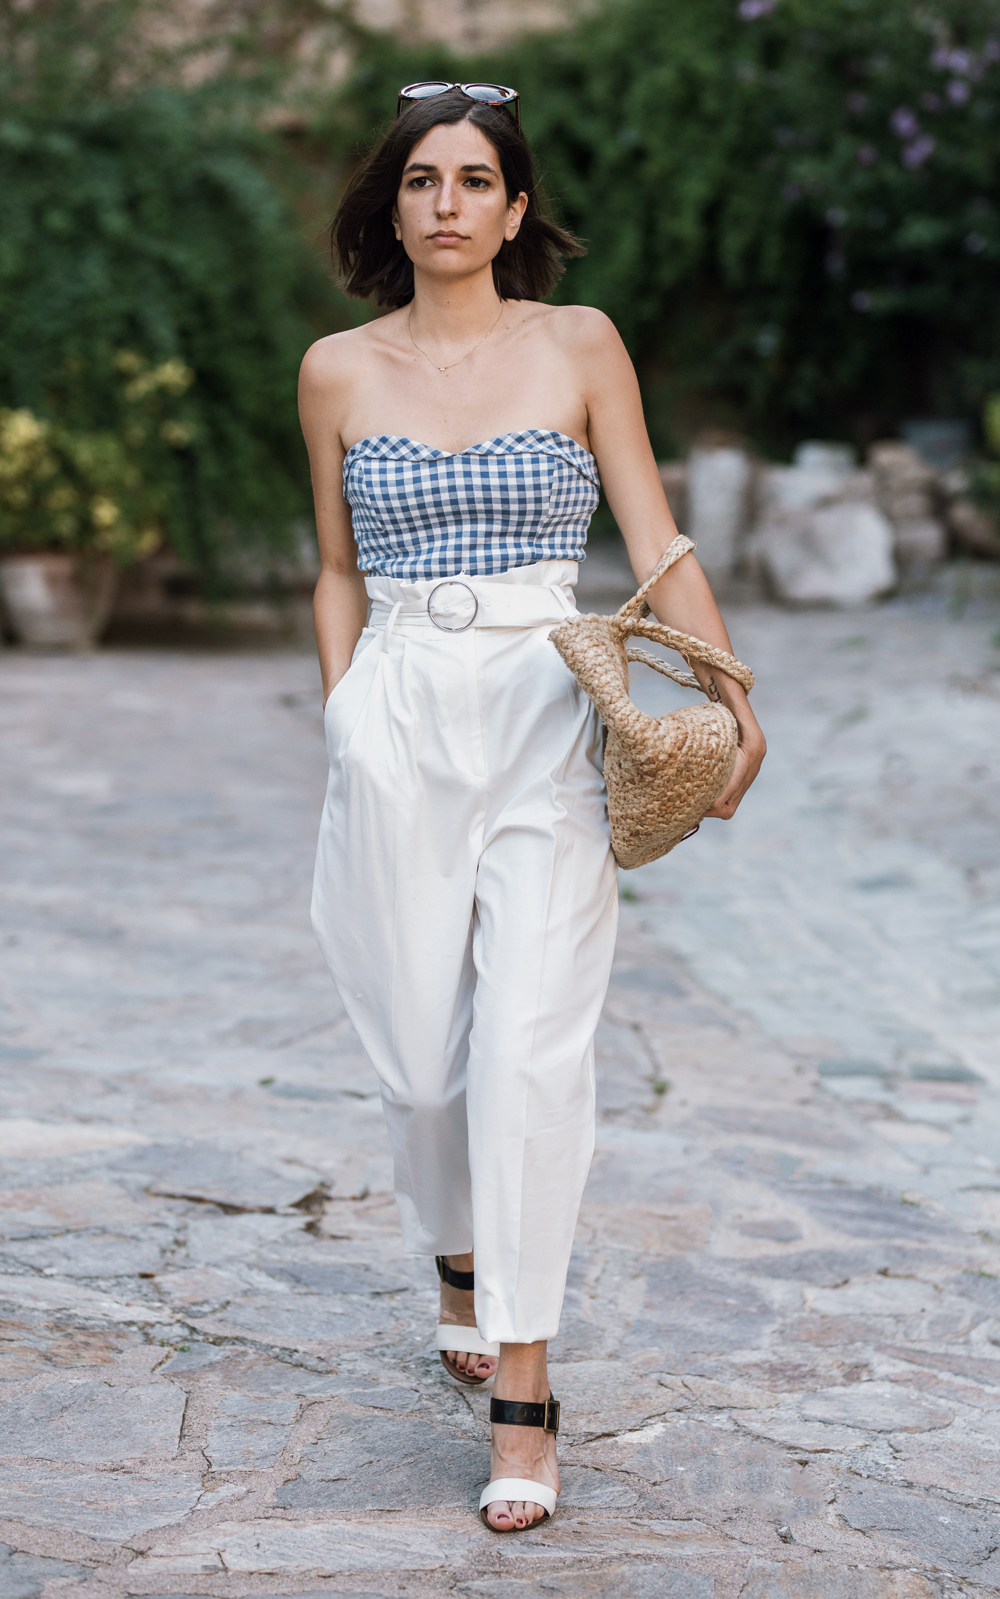 How to wear a gingham bustier this summer